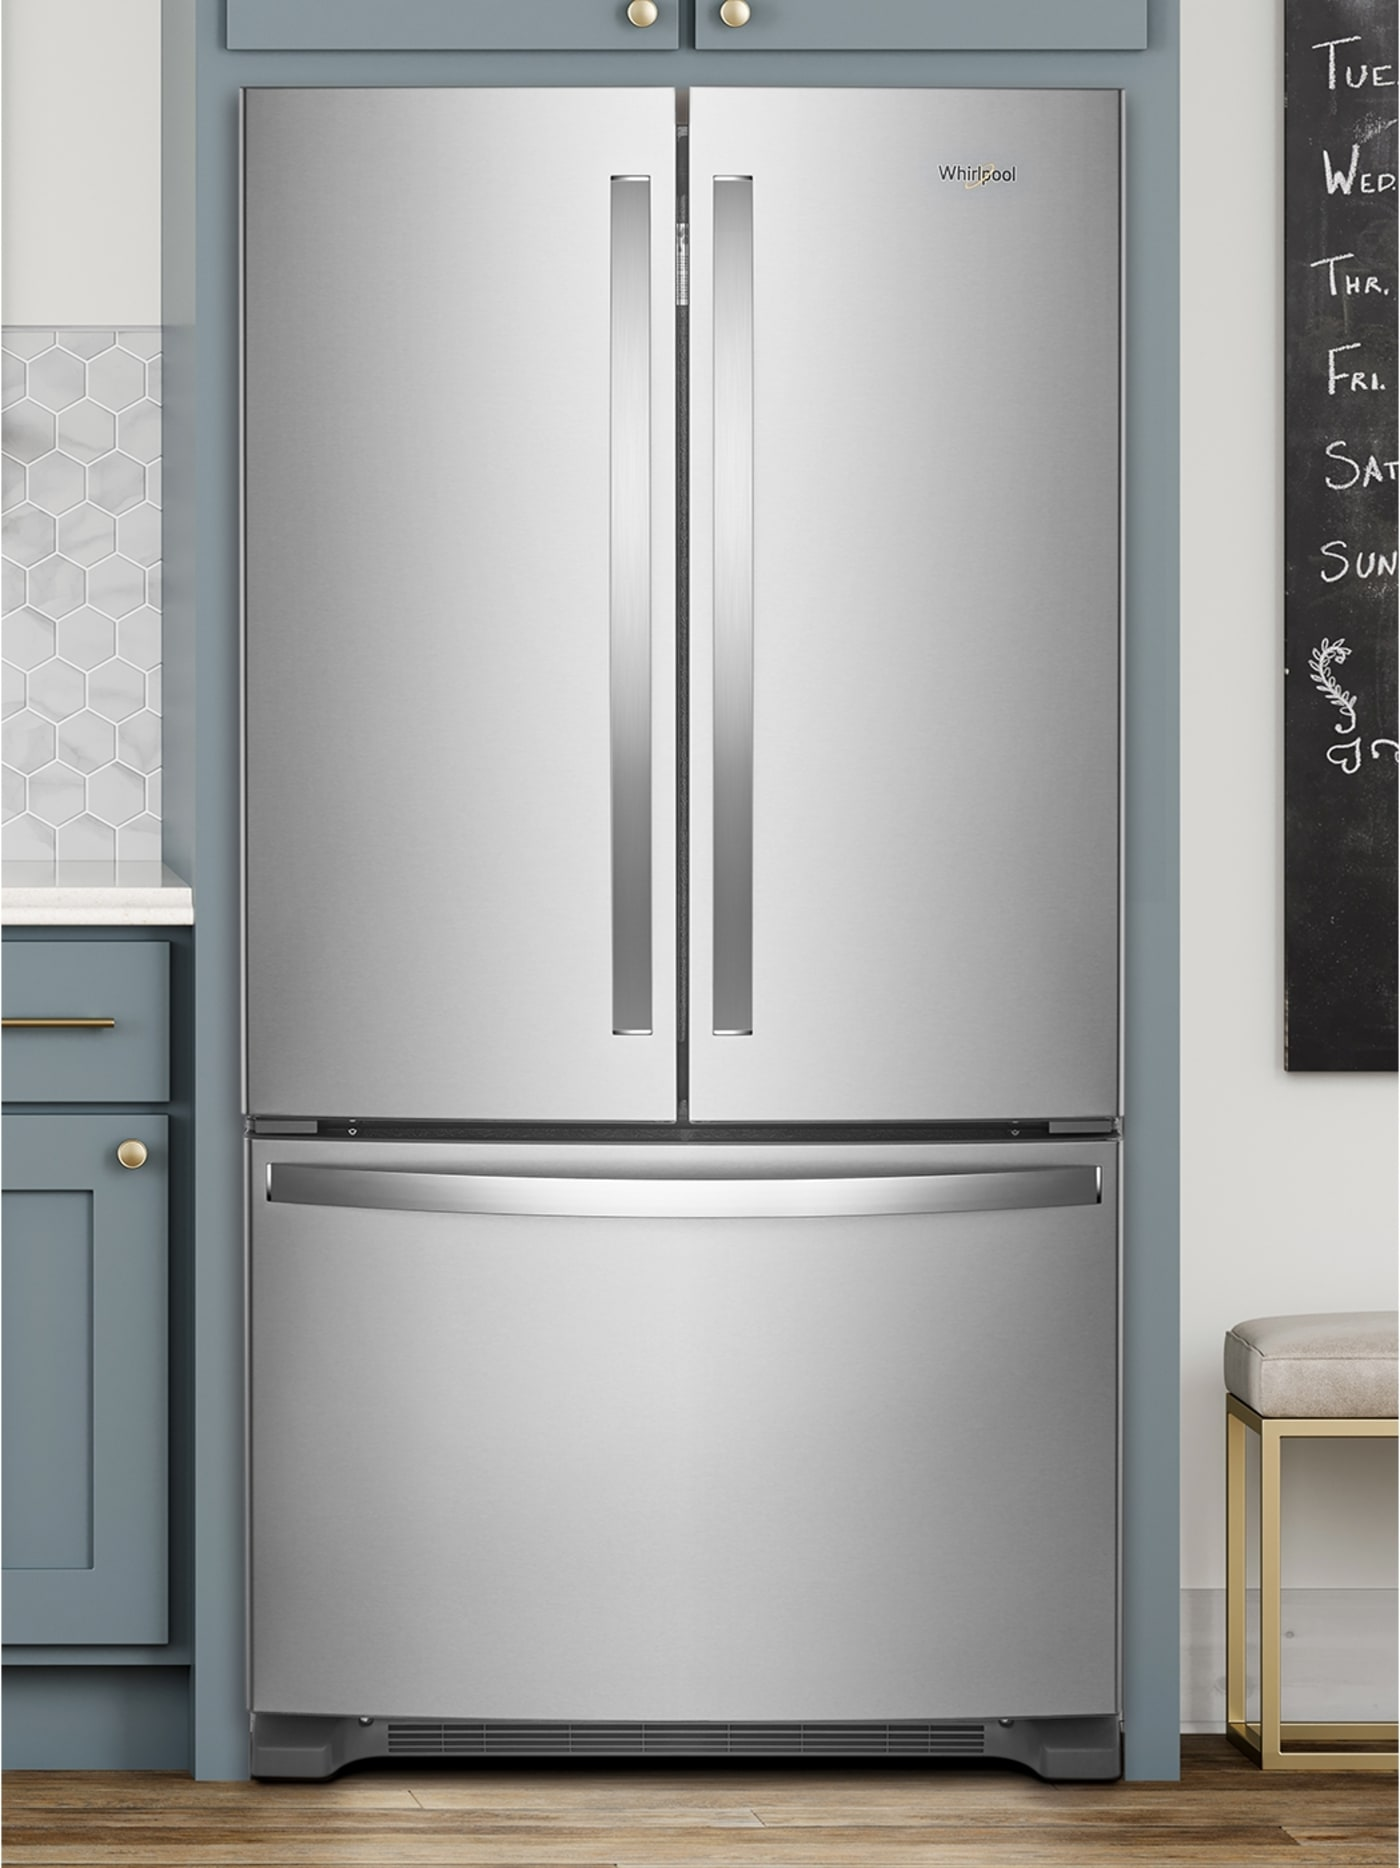 Wrf535swhz By Whirlpool French Door Refrigerators